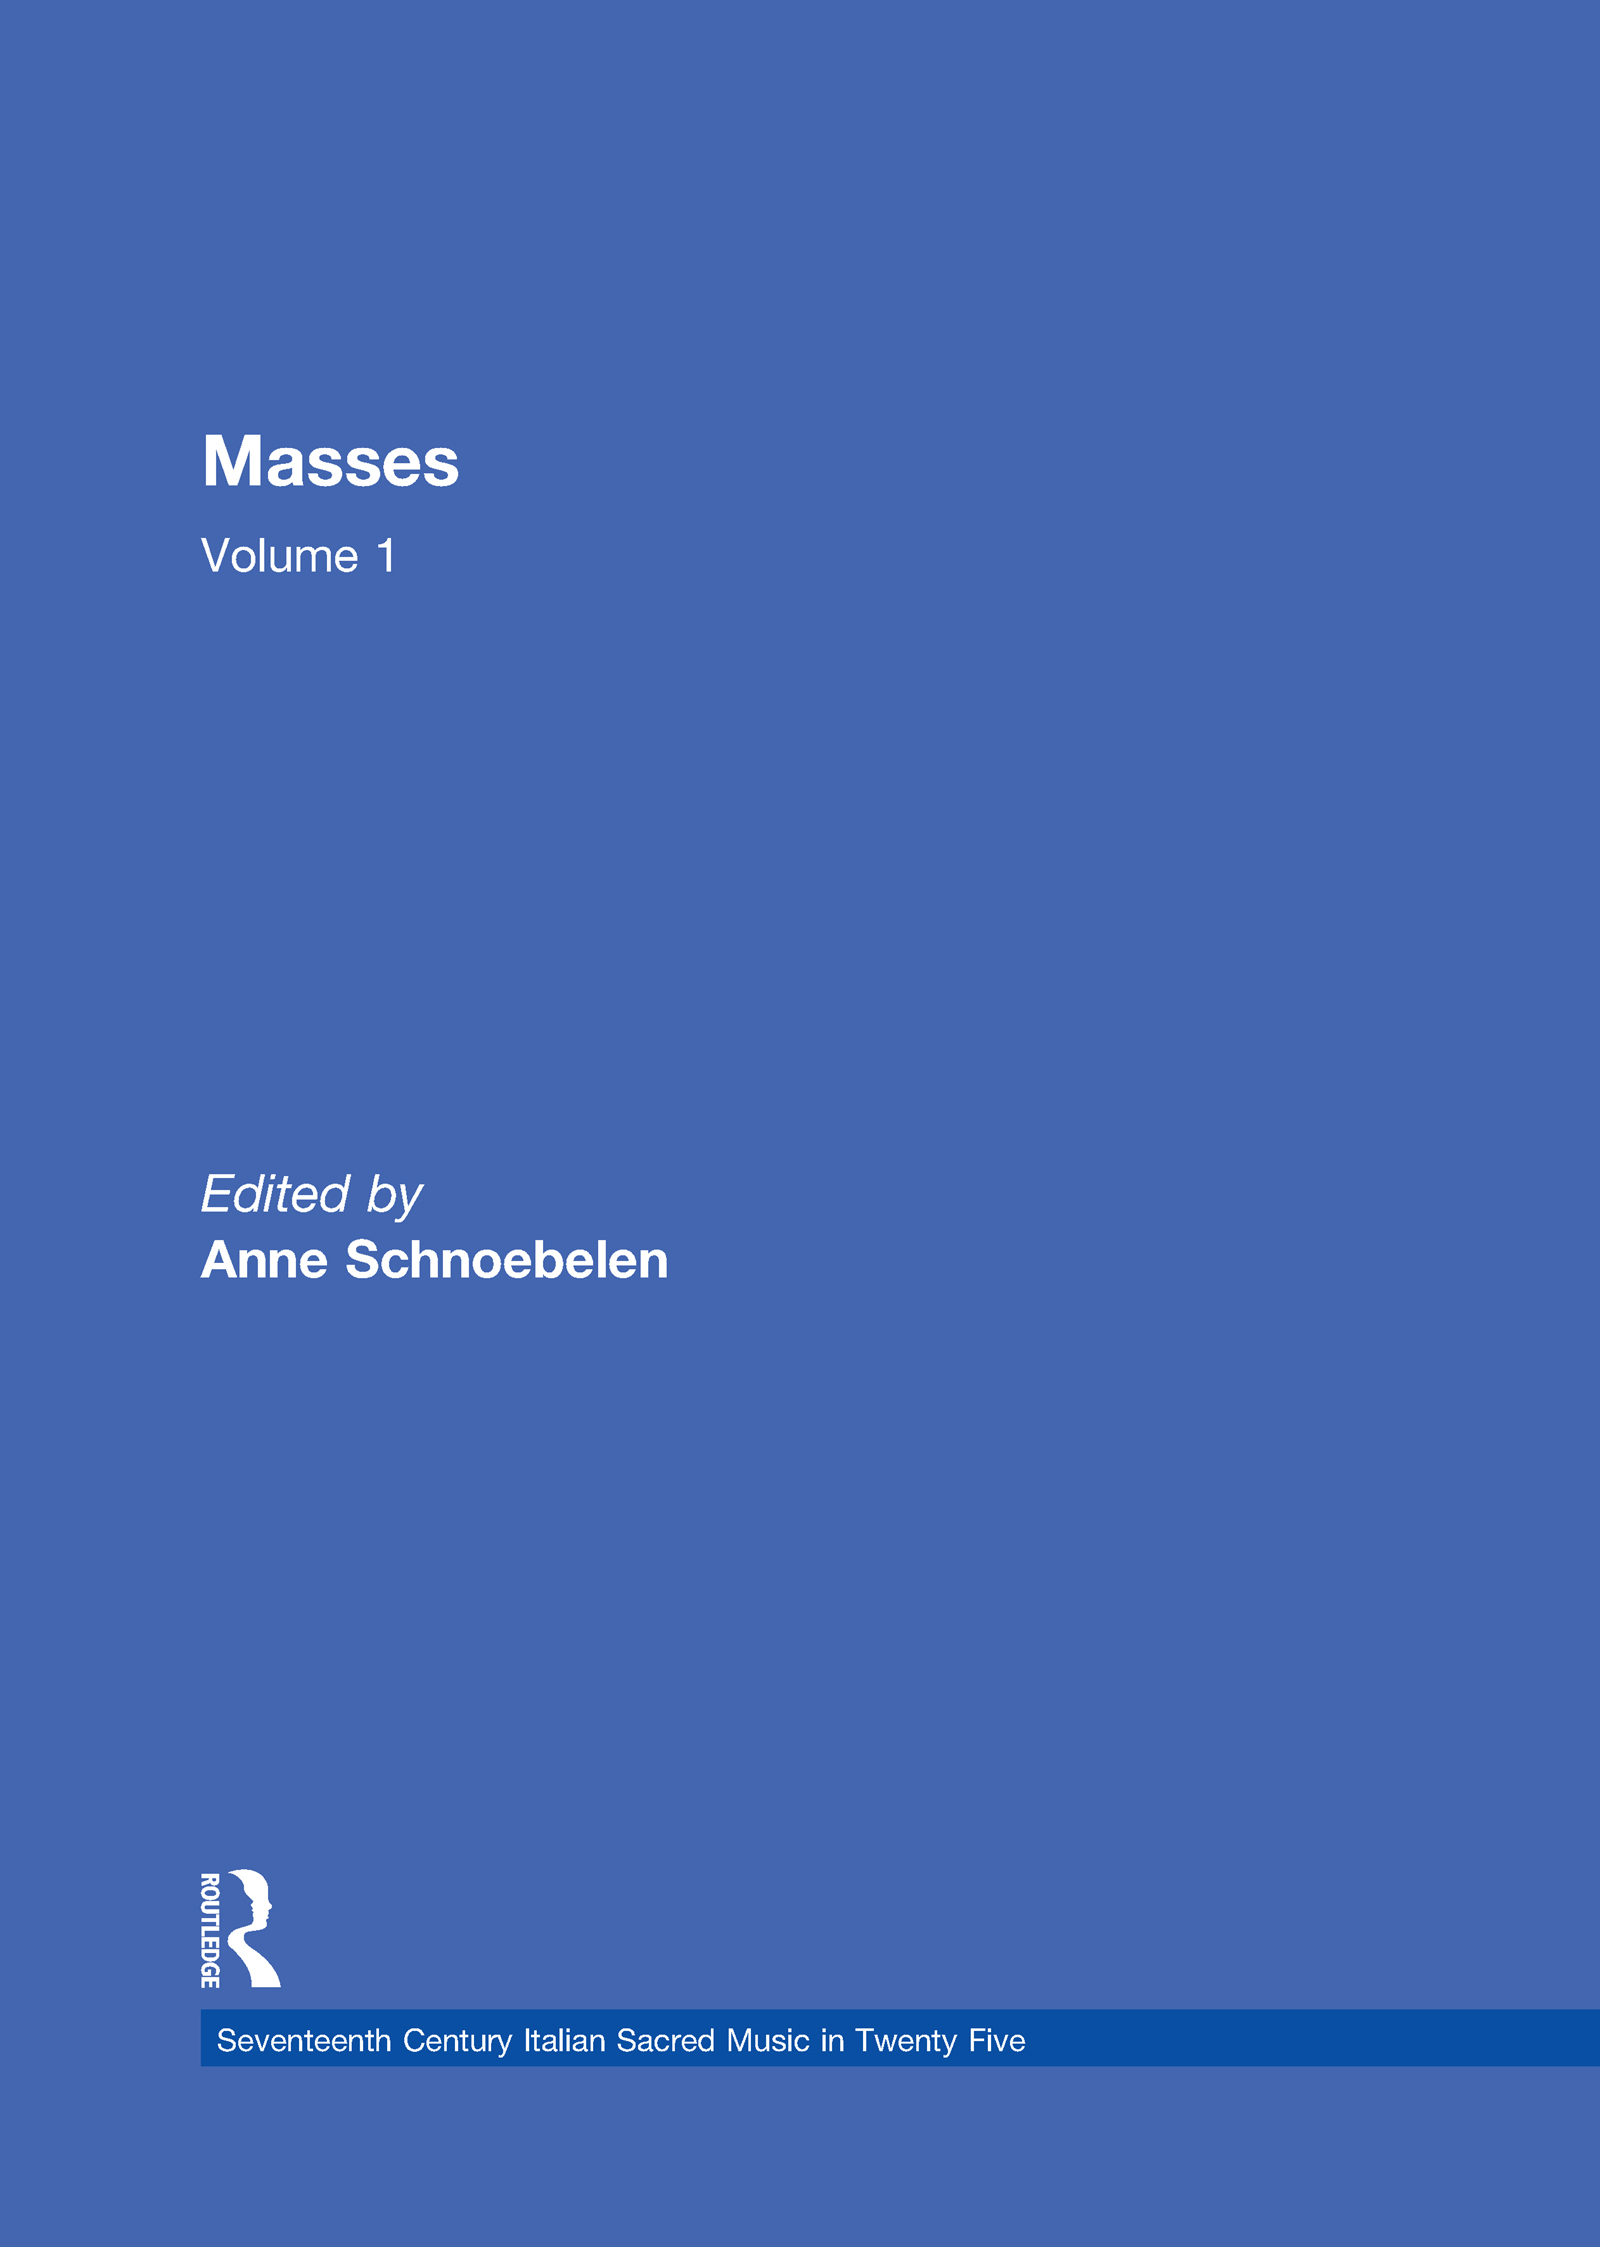 Masses by Gasparo Villani, Alessandro Grandi, Pietro Lappi, and Benivoglio Lev book cover